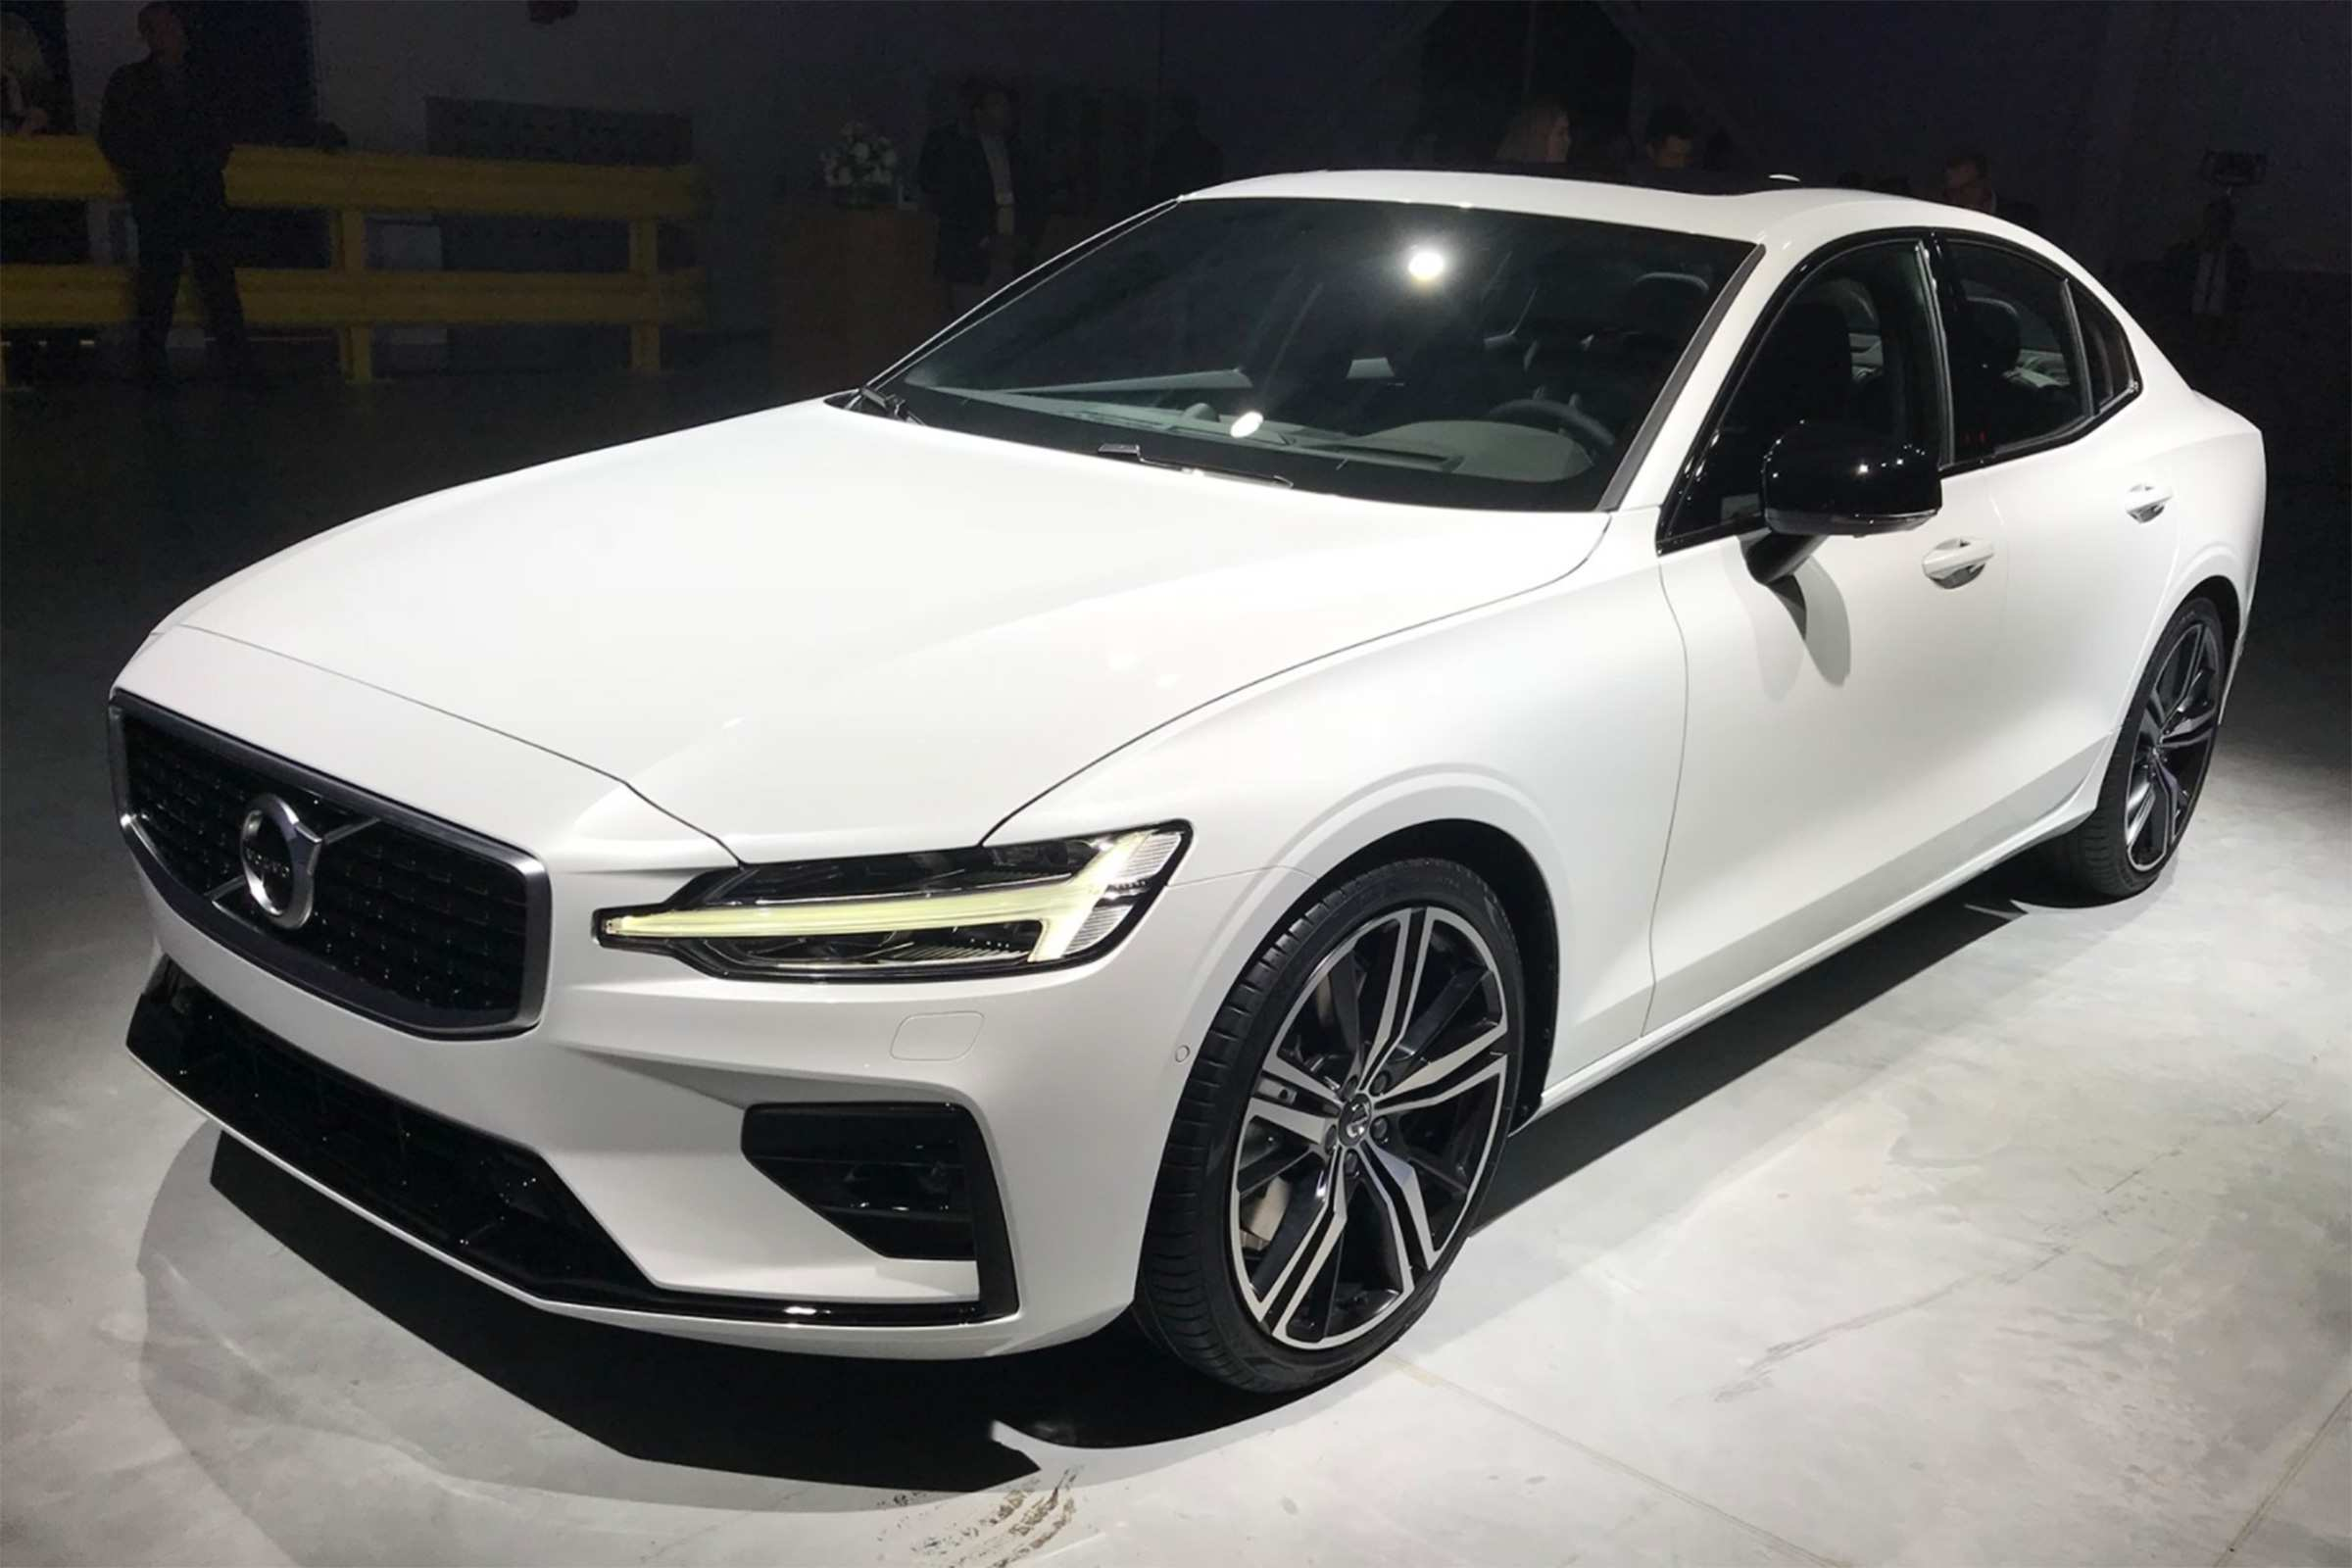 80 All New New Volvo New S60 2019 Release Date And Specs New Concept for New Volvo New S60 2019 Release Date And Specs